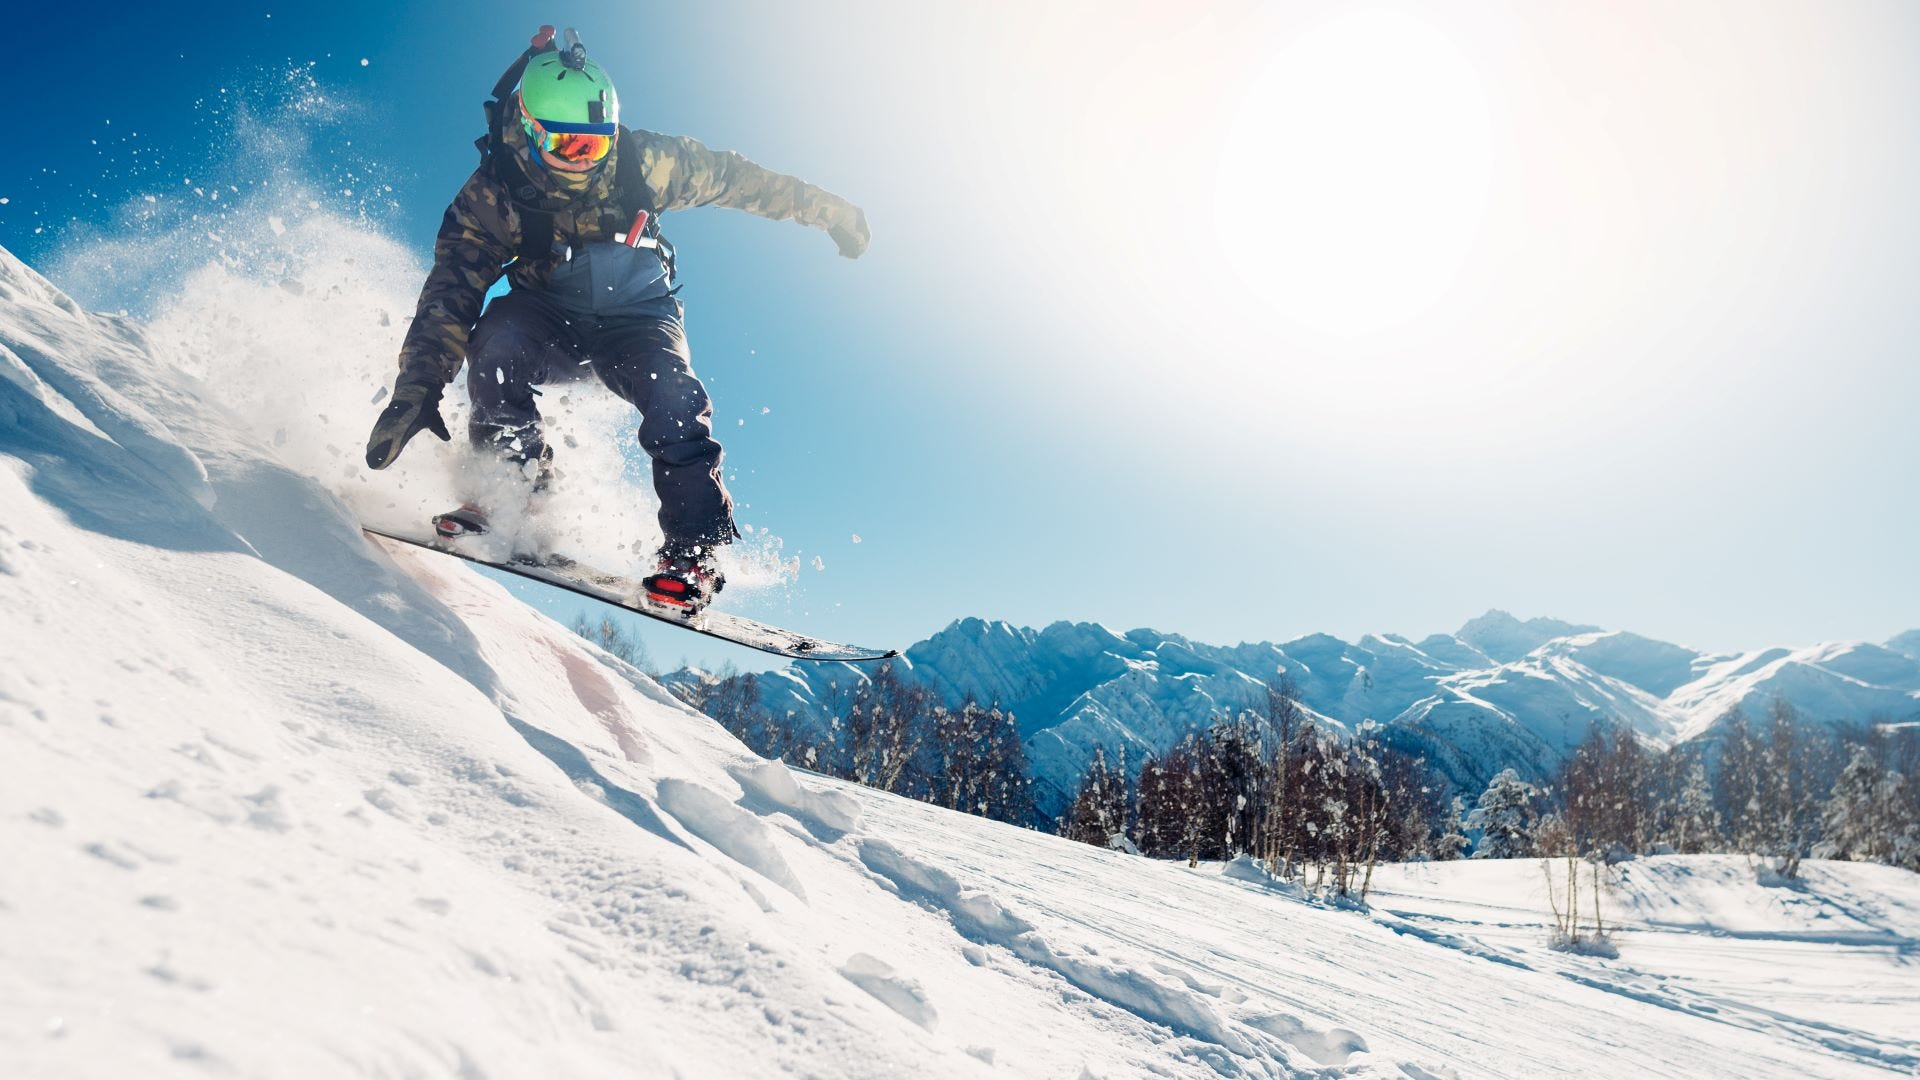 A snowboarder coming down a snow-covered hillside.